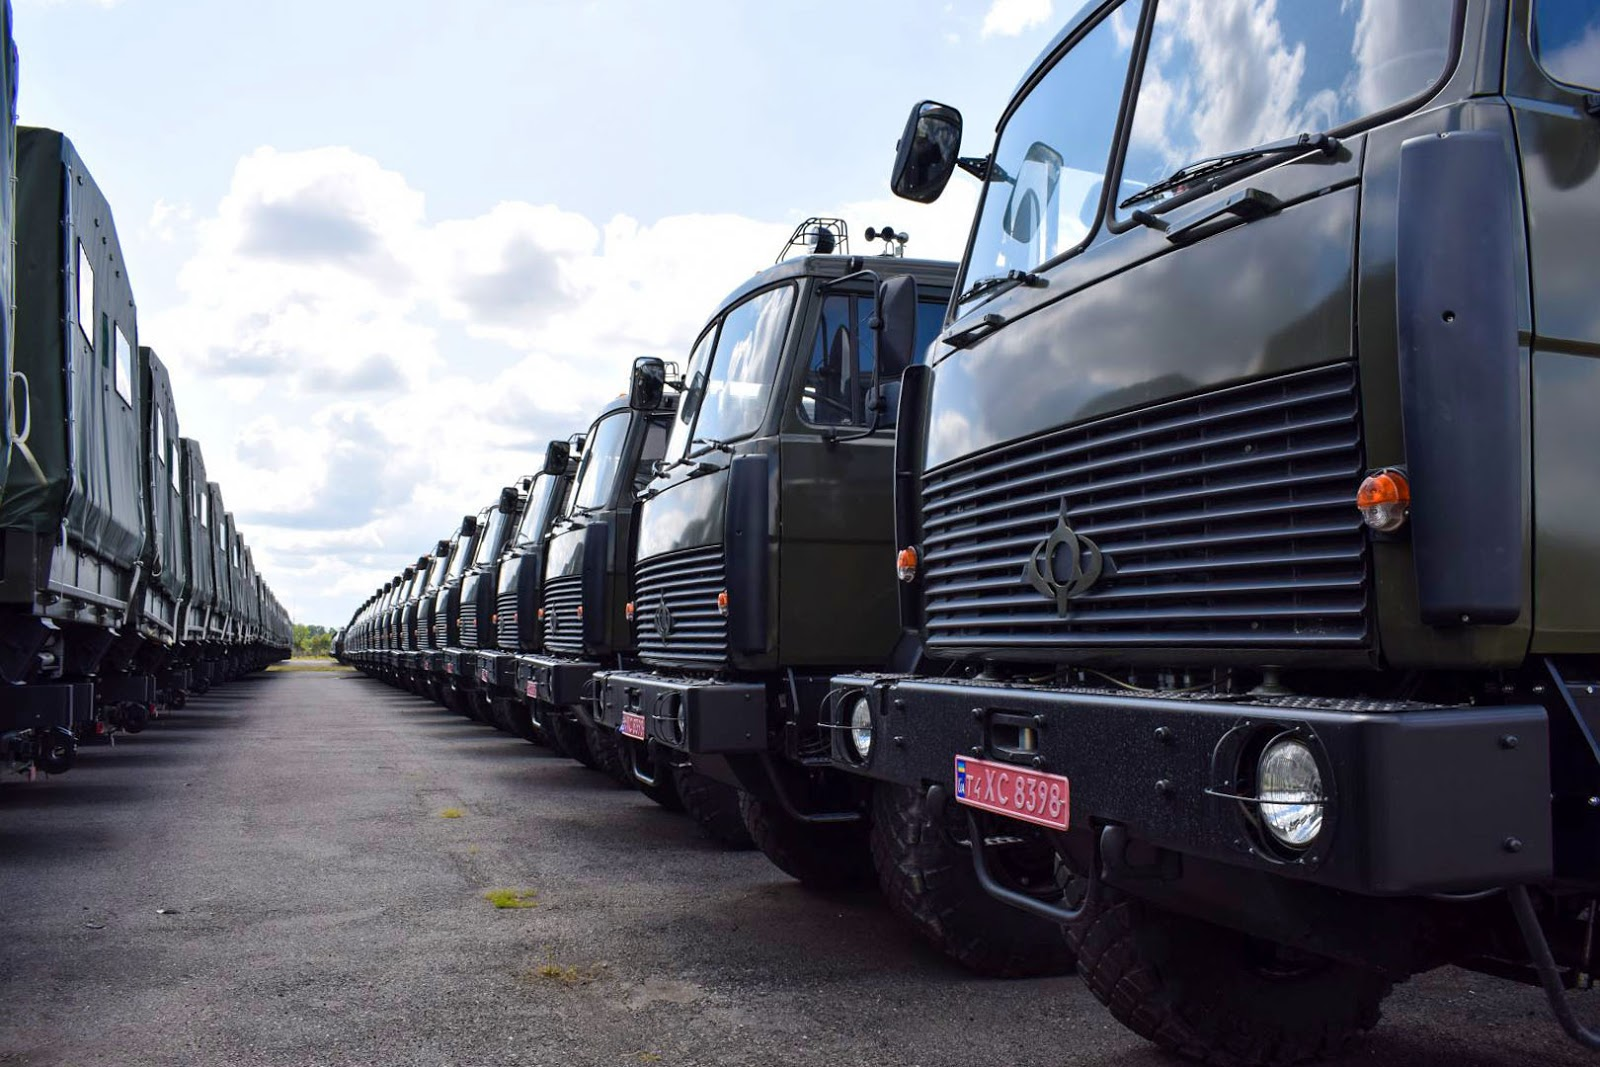 The Ukrainian Army has received almost a hundred trucks